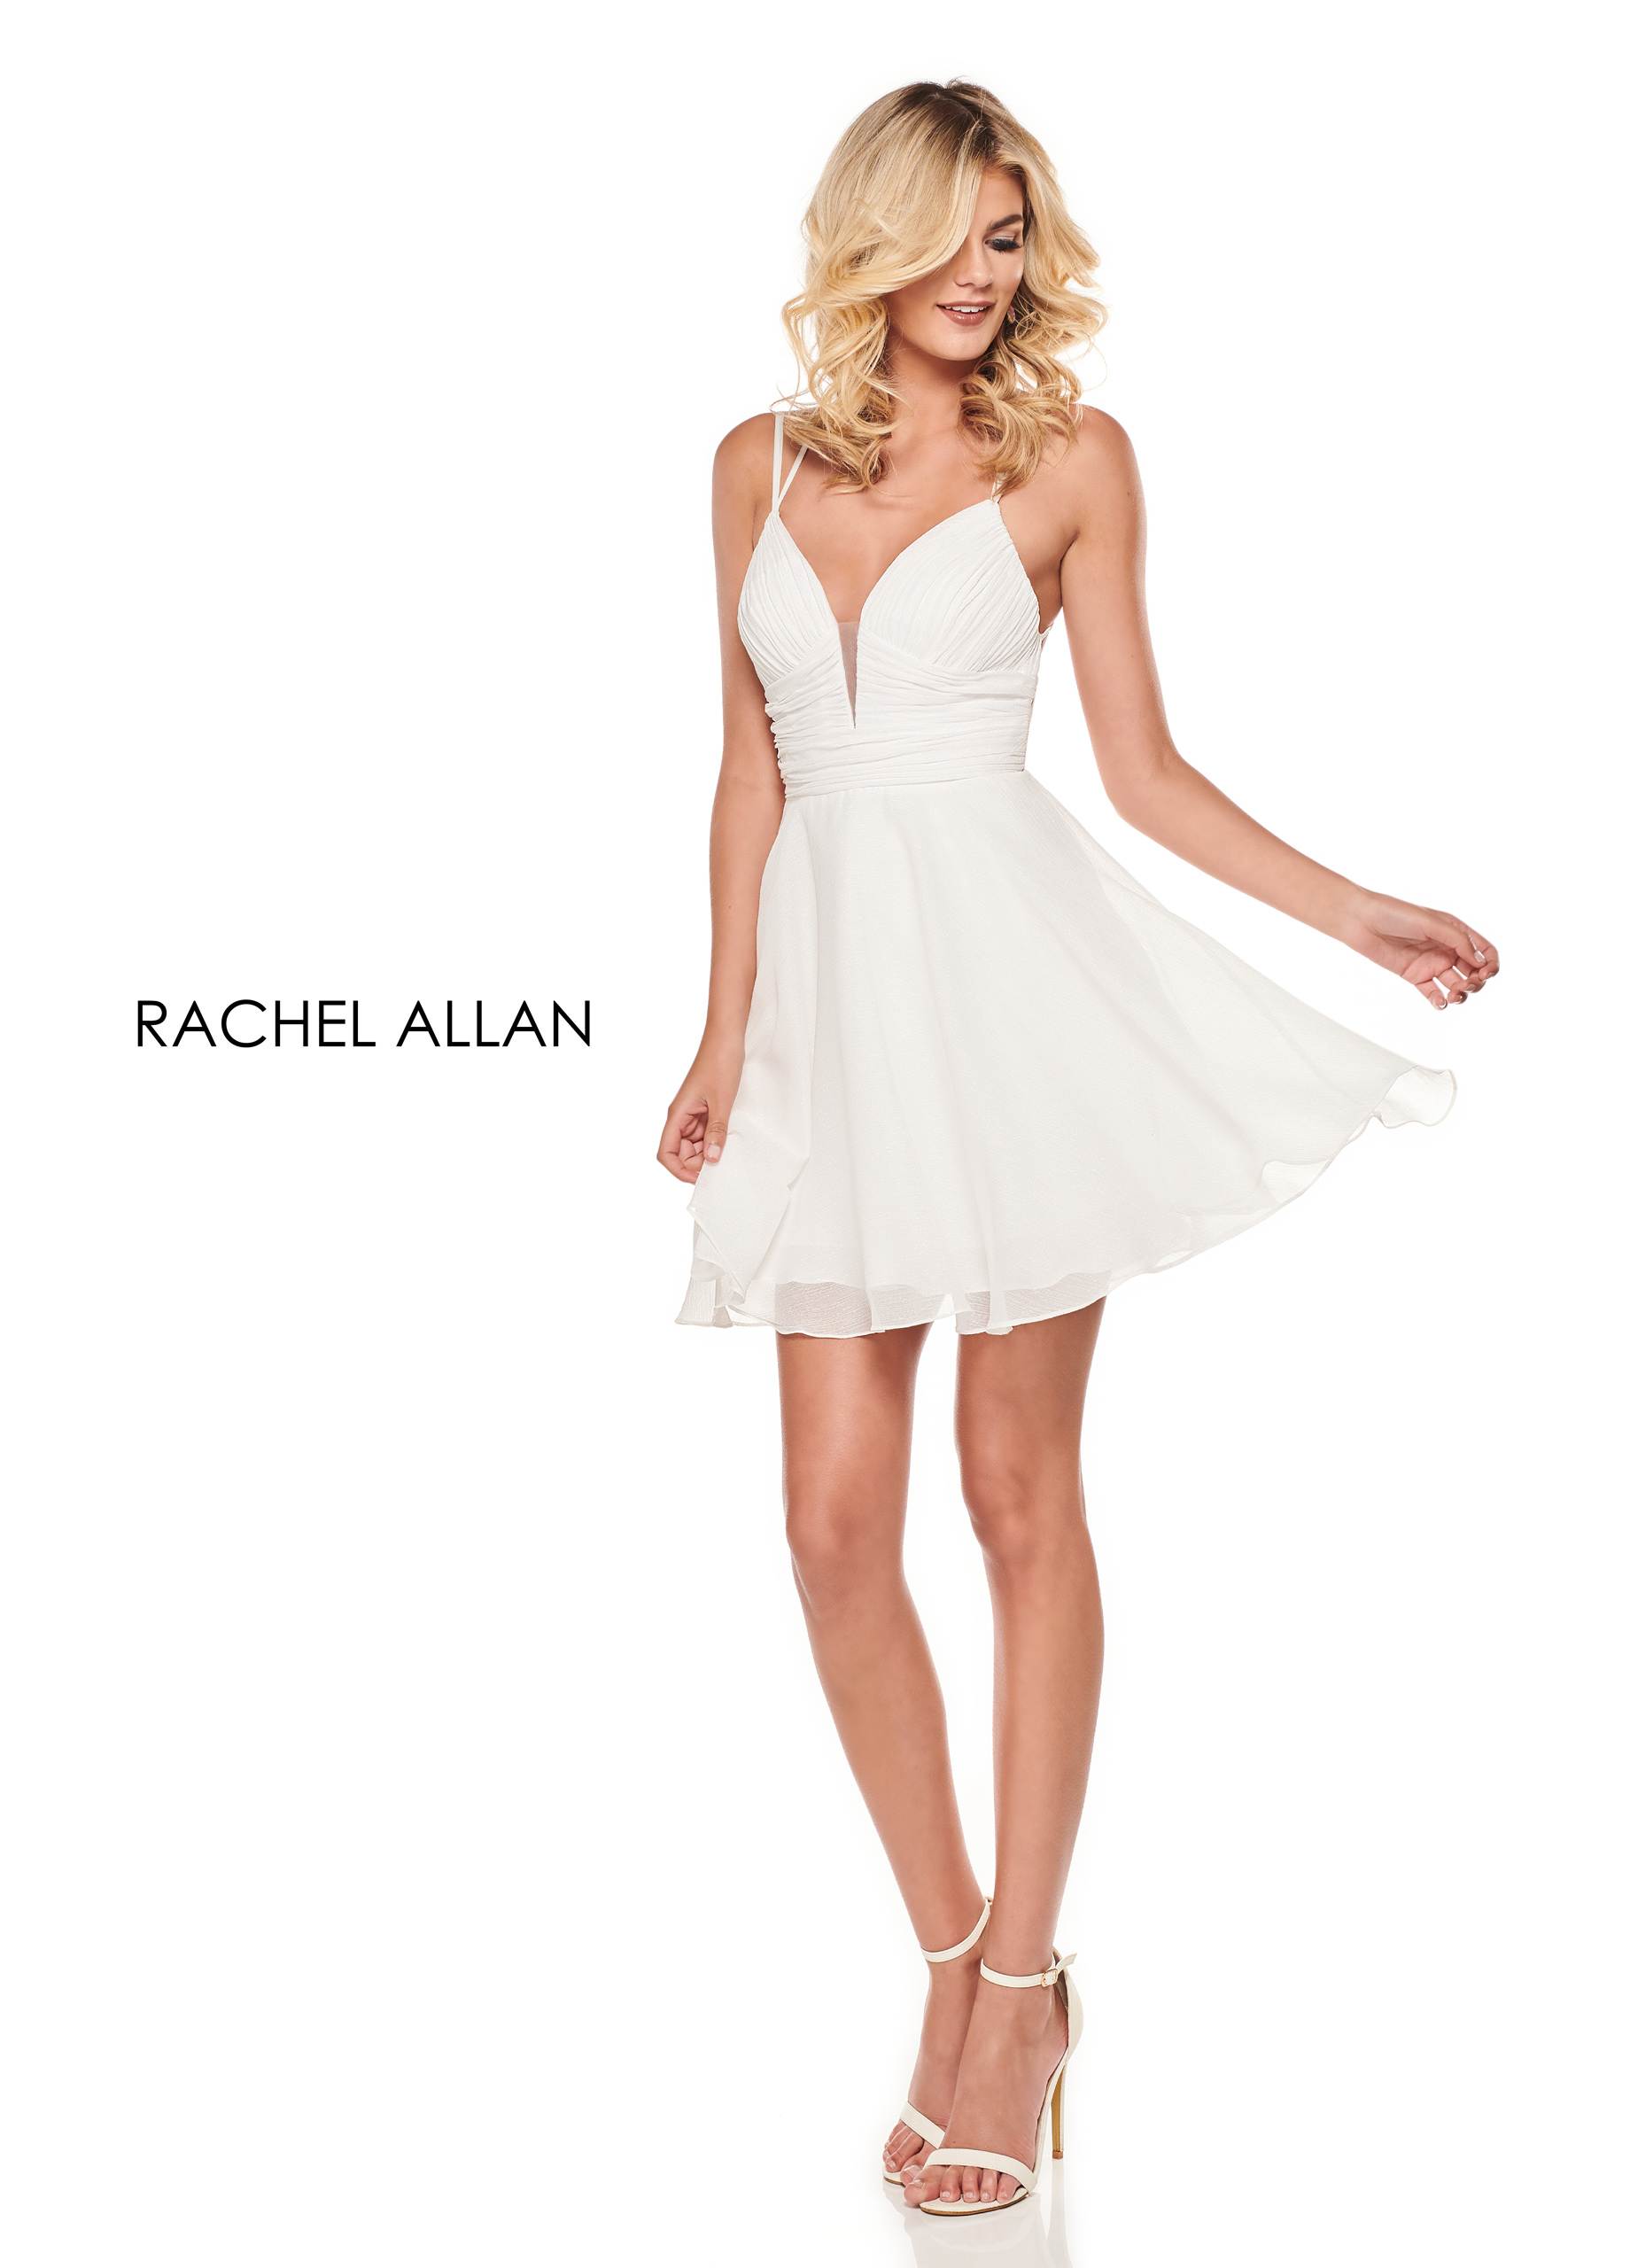 Sweetheart Full Skirt Mini Cocktail Dresses in White Color